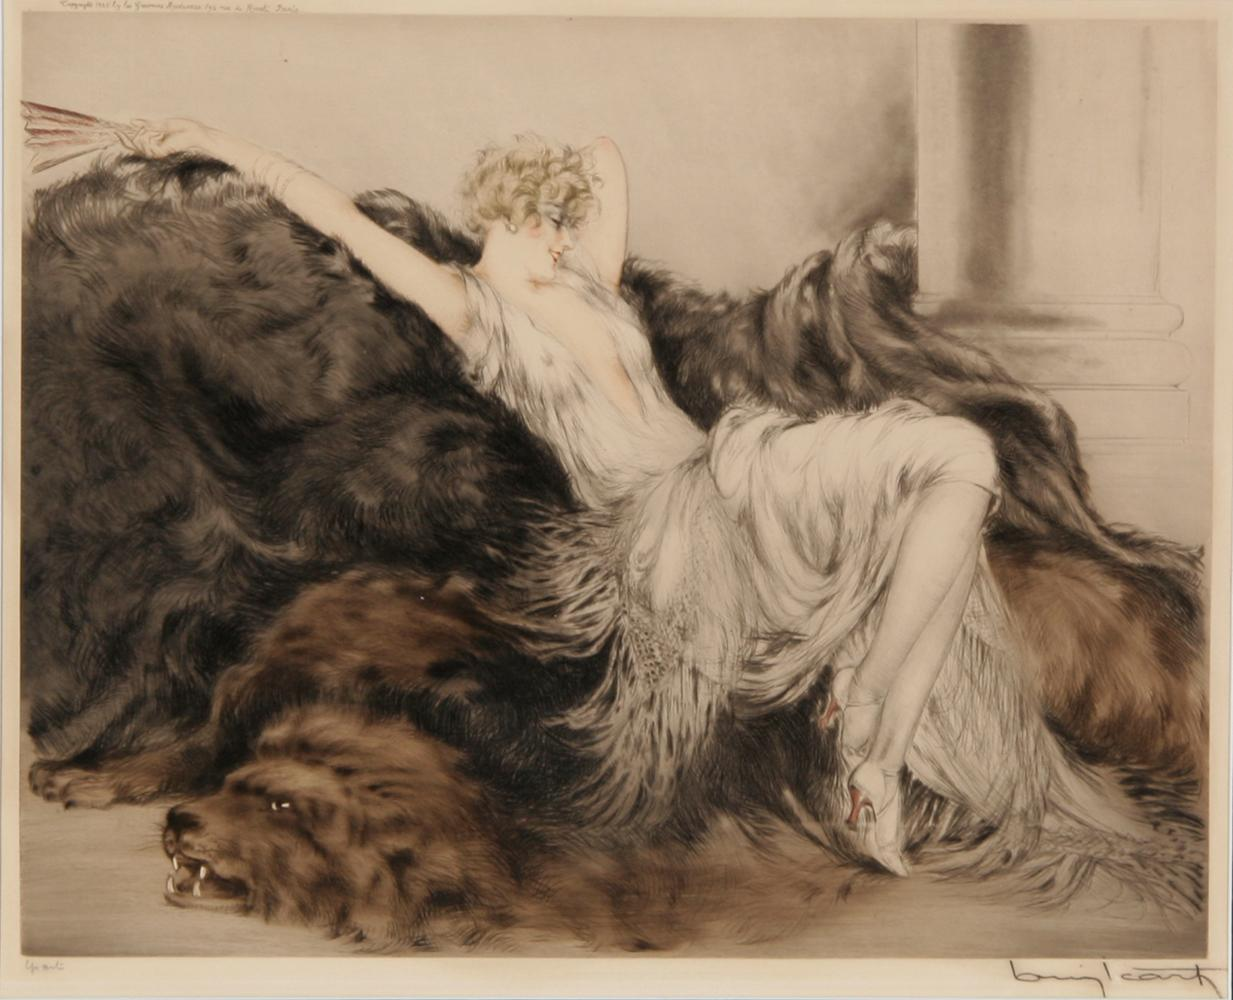 Louis icart paresse etching 1925 for Where to buy fine art